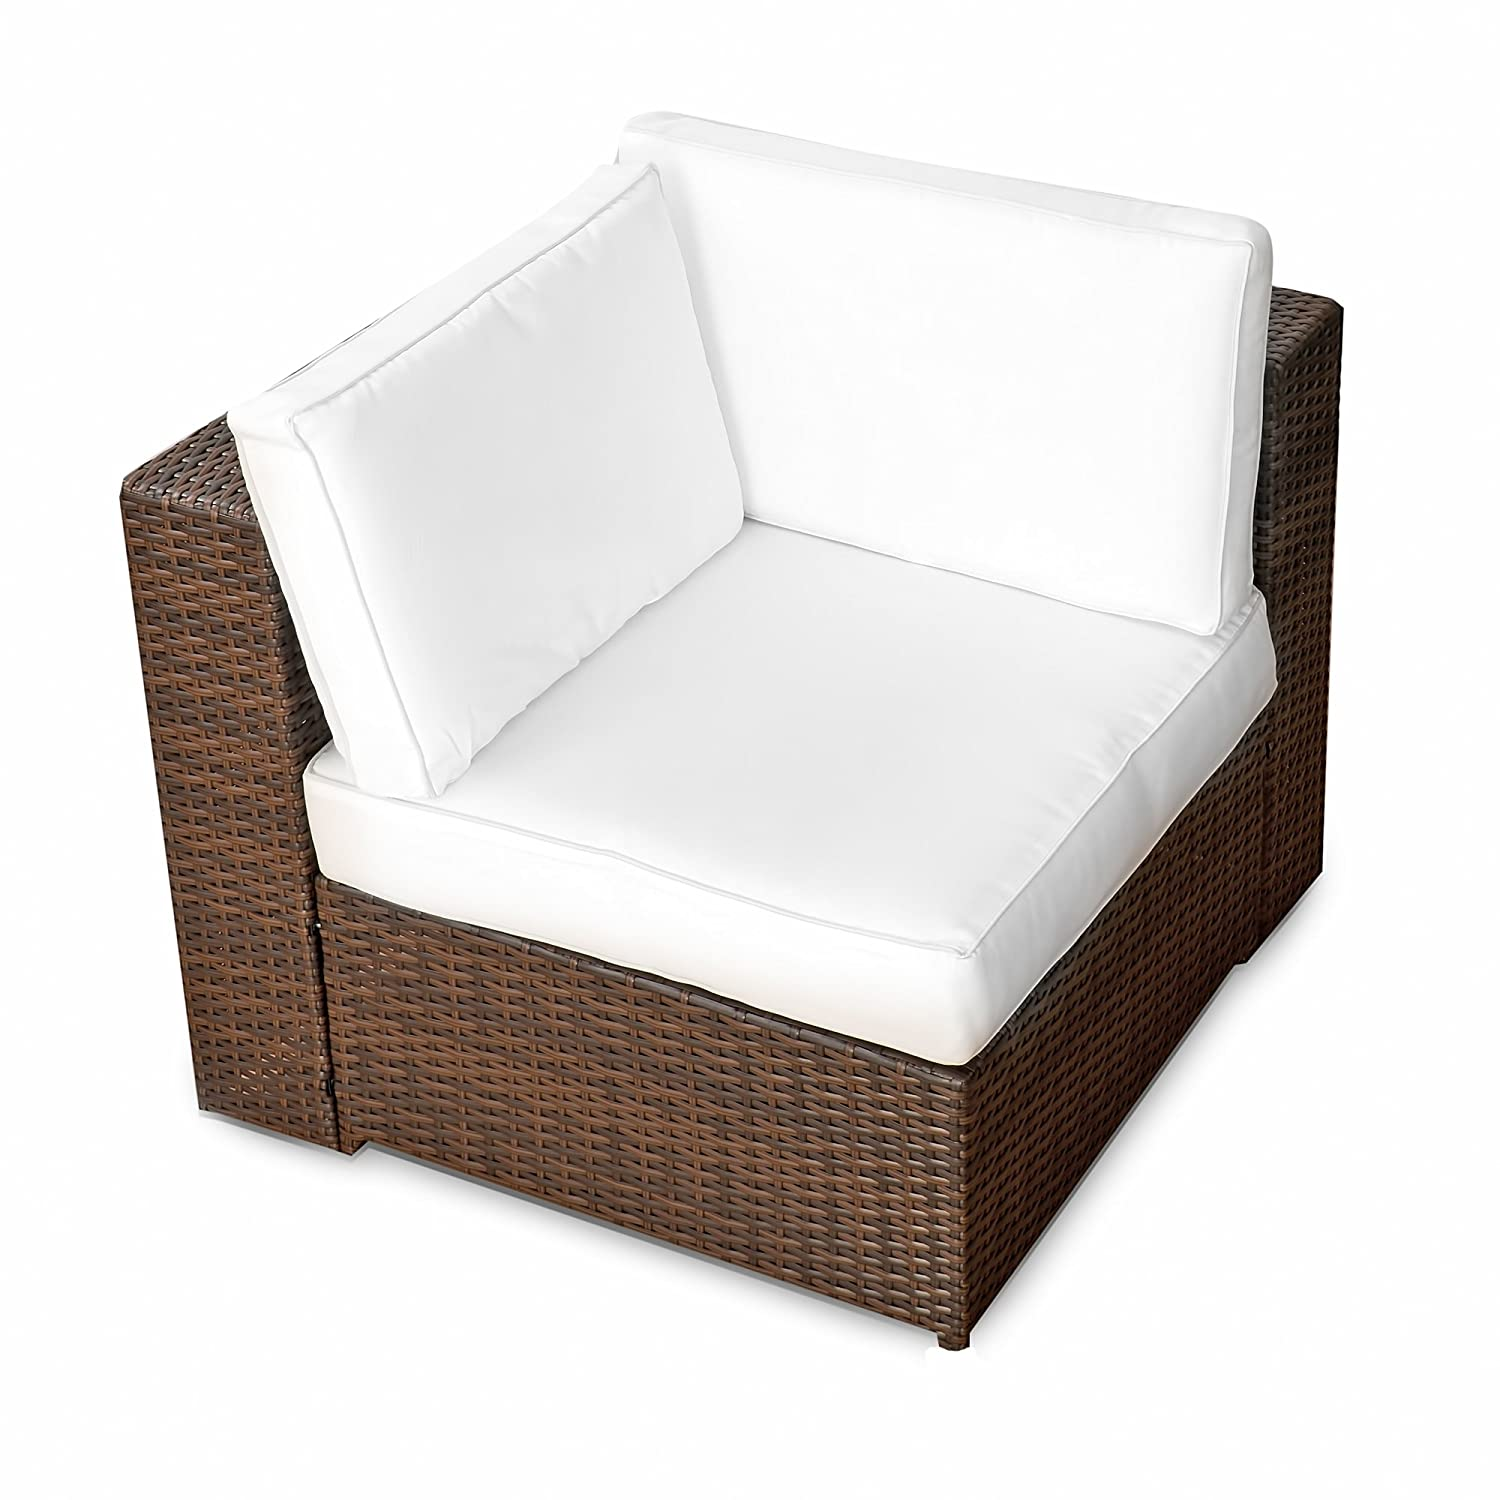 Amazon.de: (1er) Polyrattan Lounge Möbel Eck Sessel braun ...